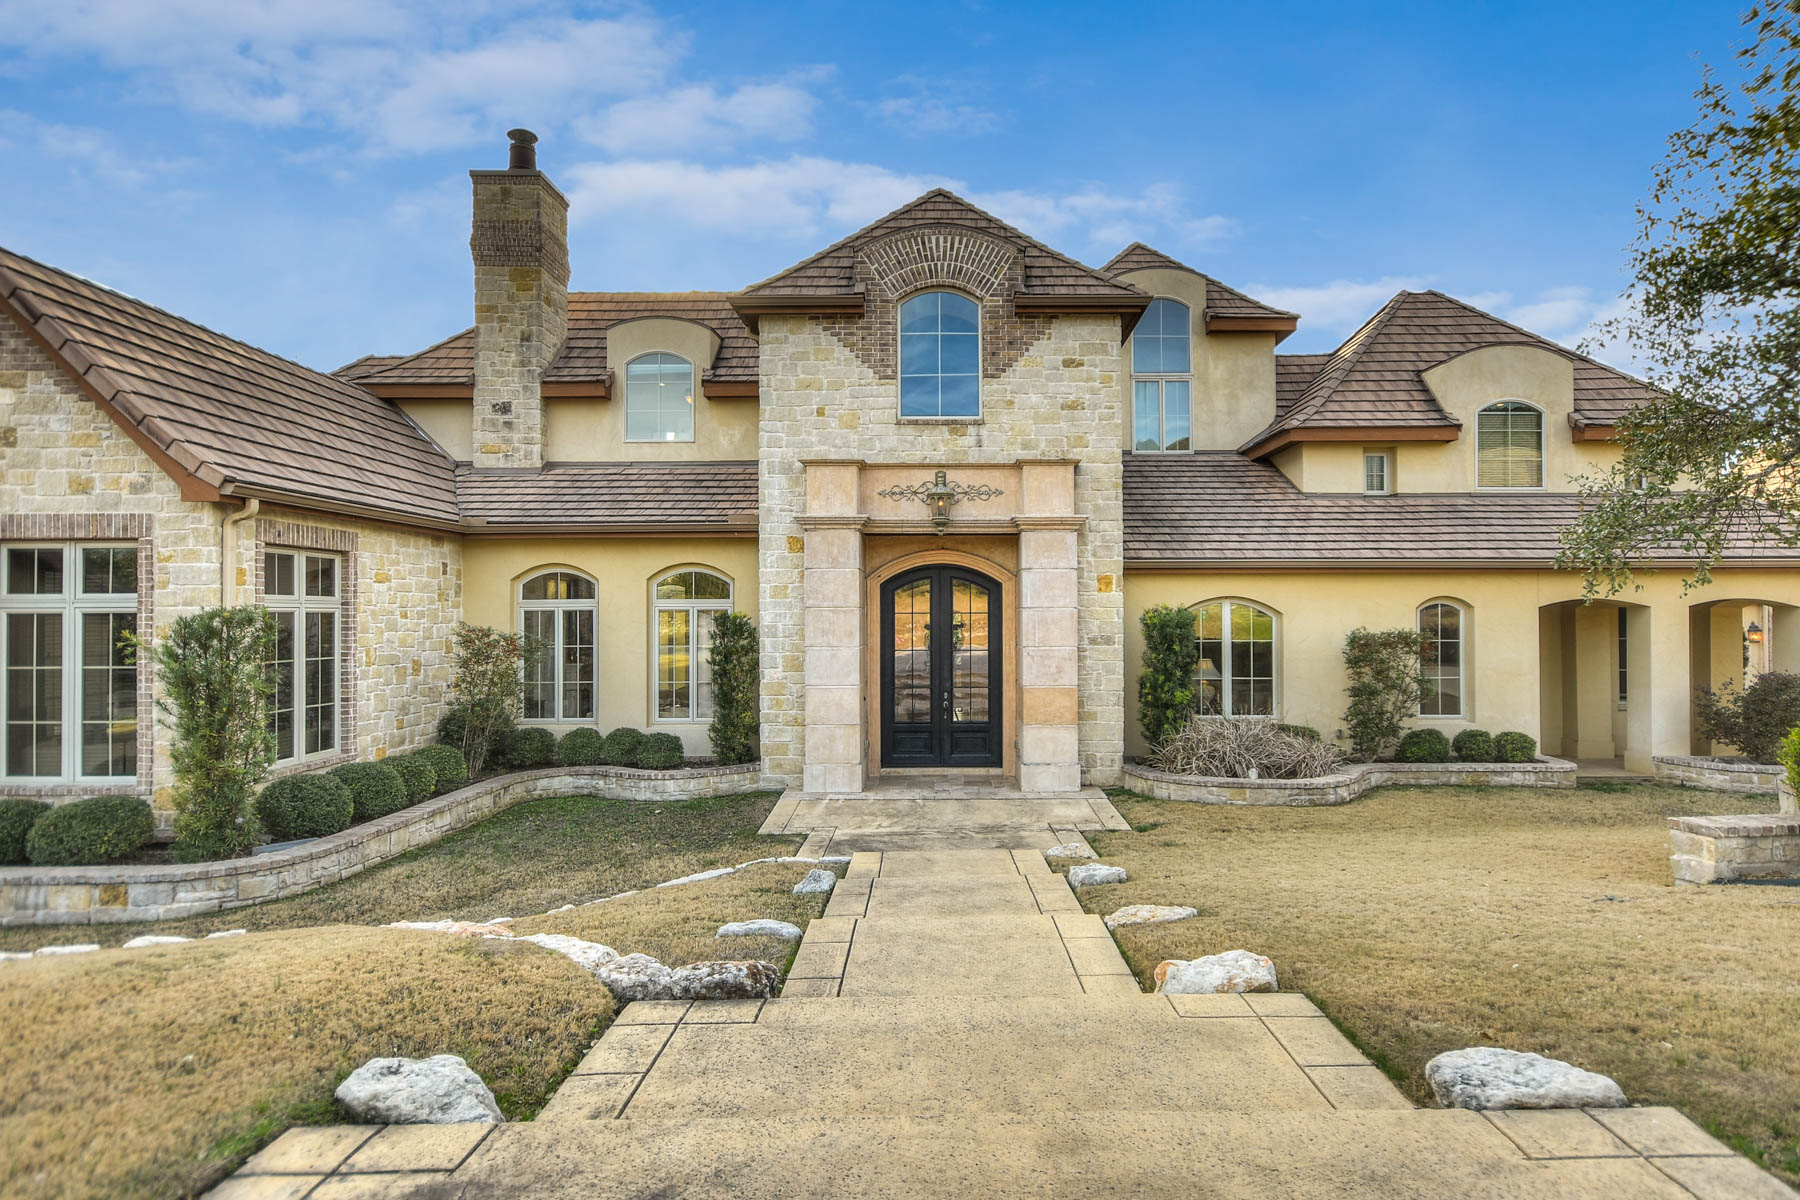 Single Family Home for Sale at Creative Masterpiece in The Dominion 19 Chaumont San Antonio, Texas 78257 United States